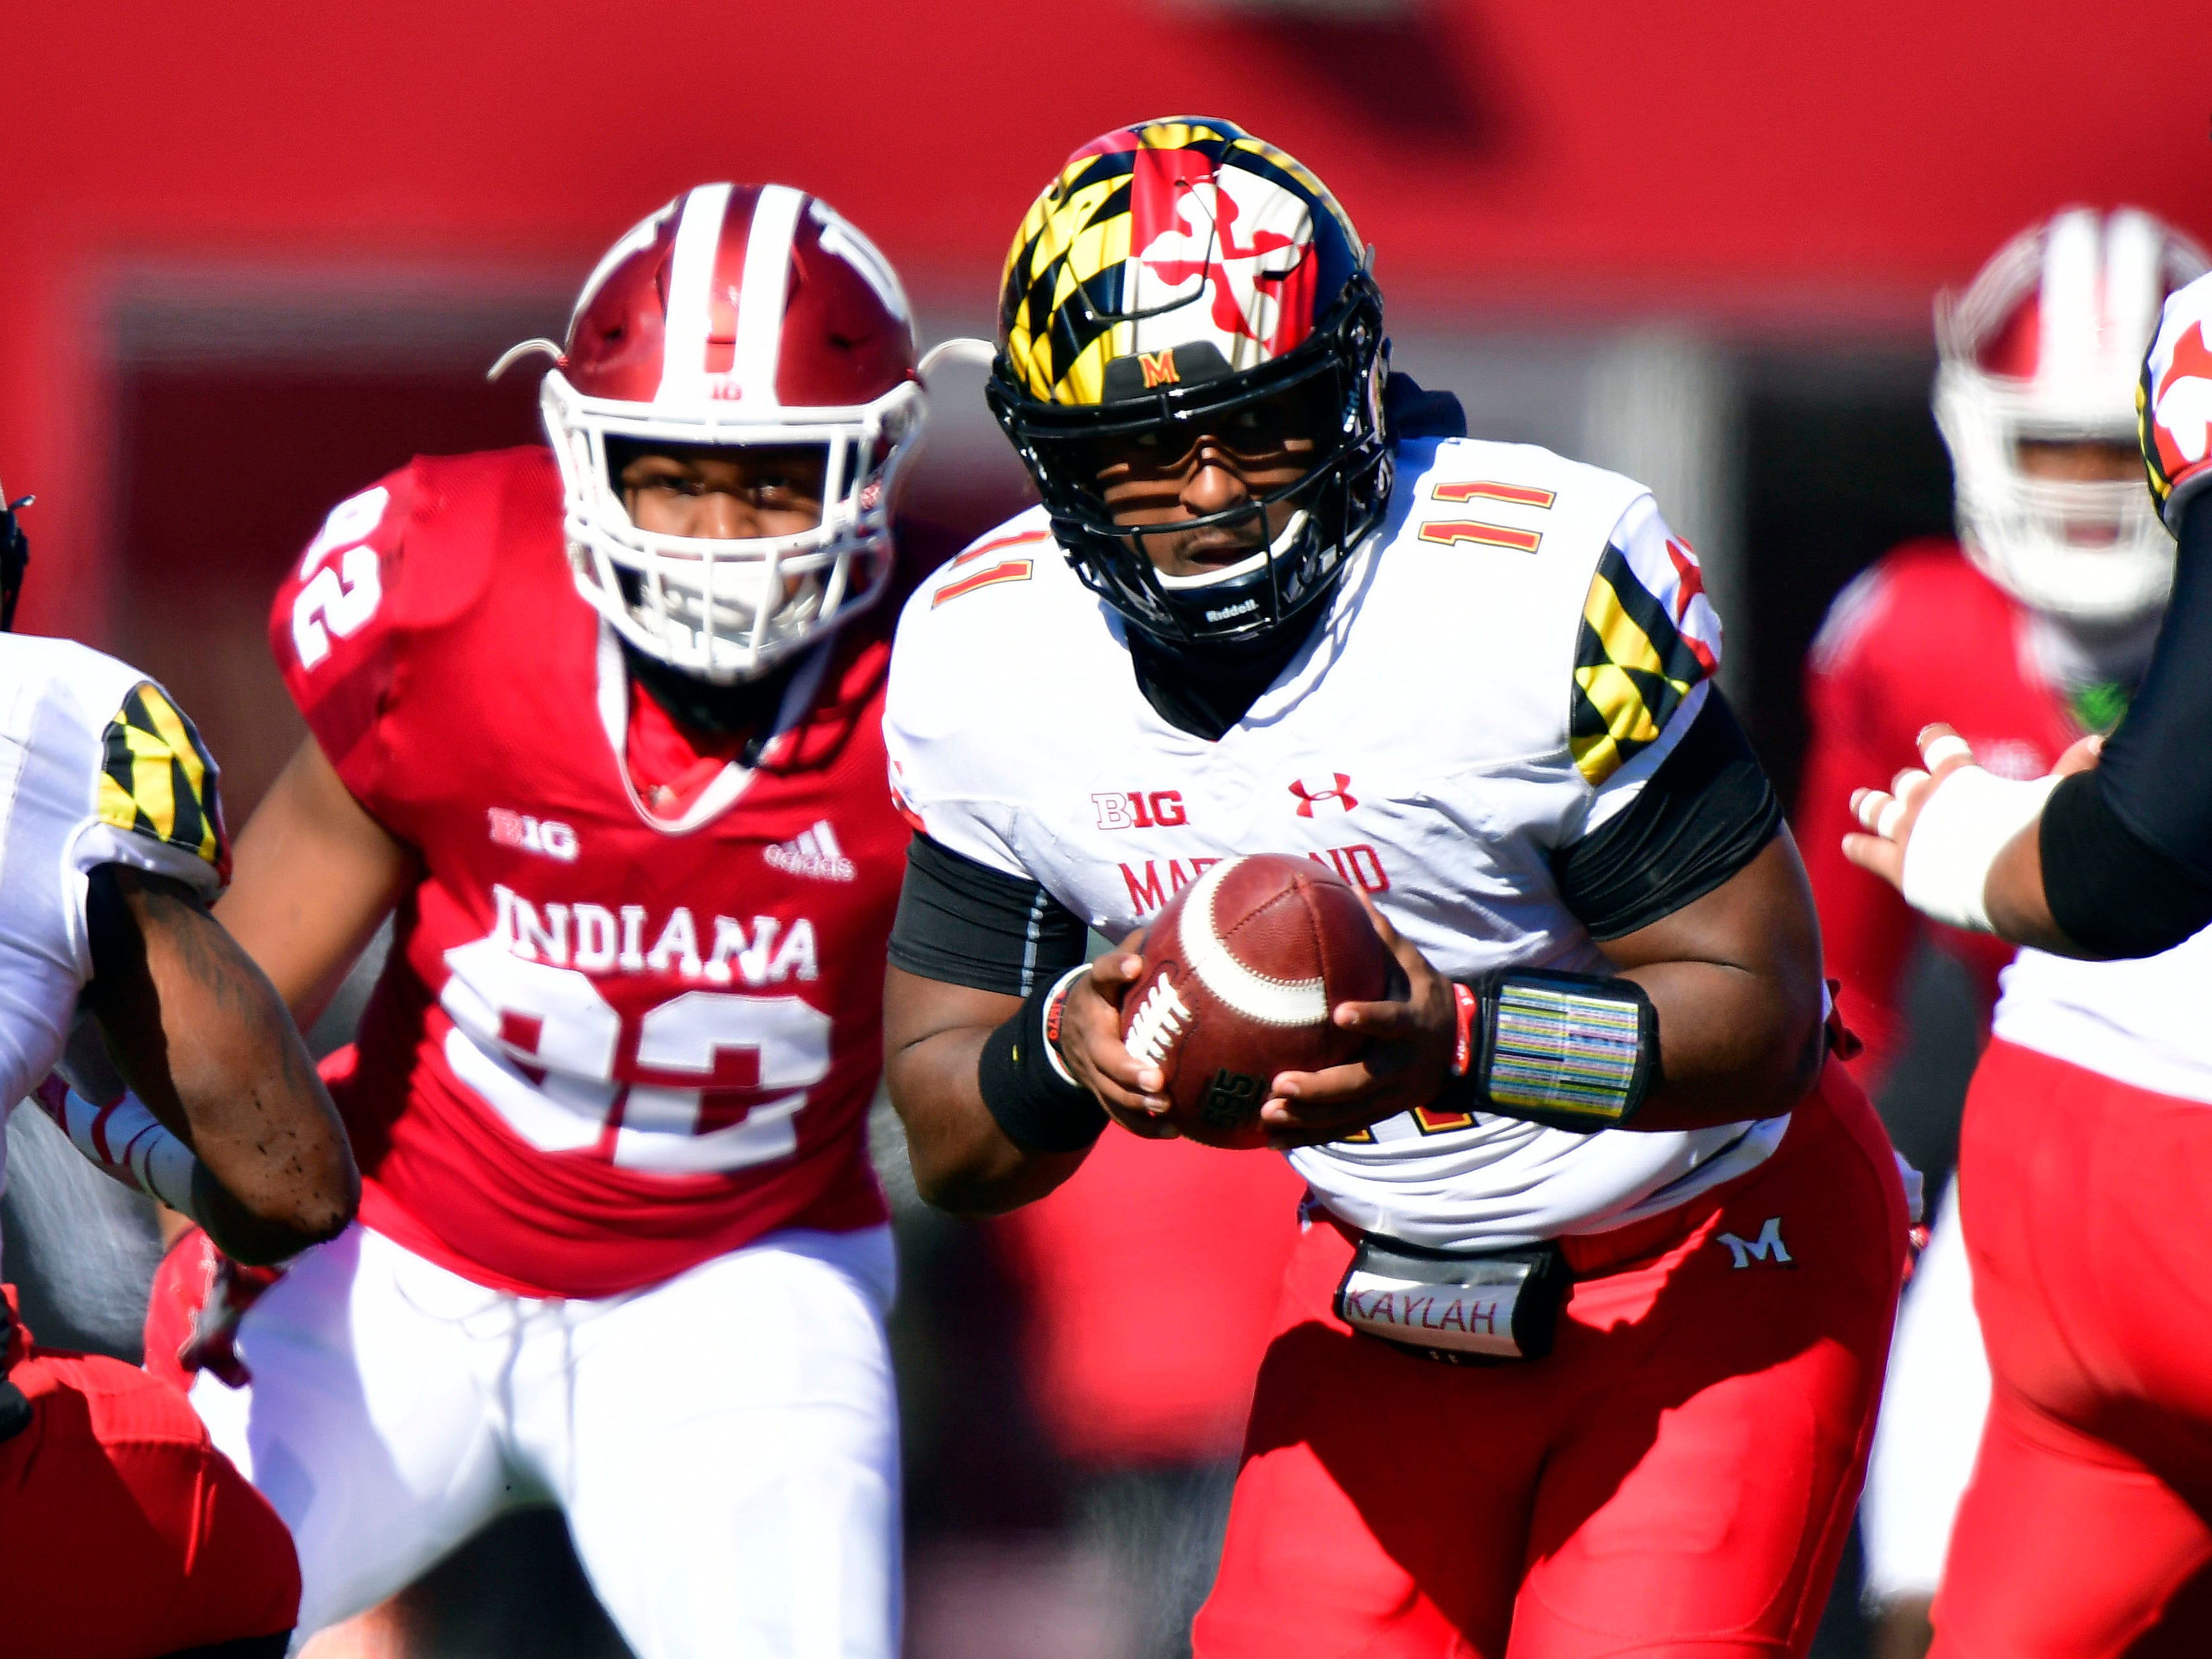 Maryland Terrapins quarterback Kasim Hill (11) looks for a teammate during the fist half of the the game against the Indiana Hoosiers at Memorial Stadium .